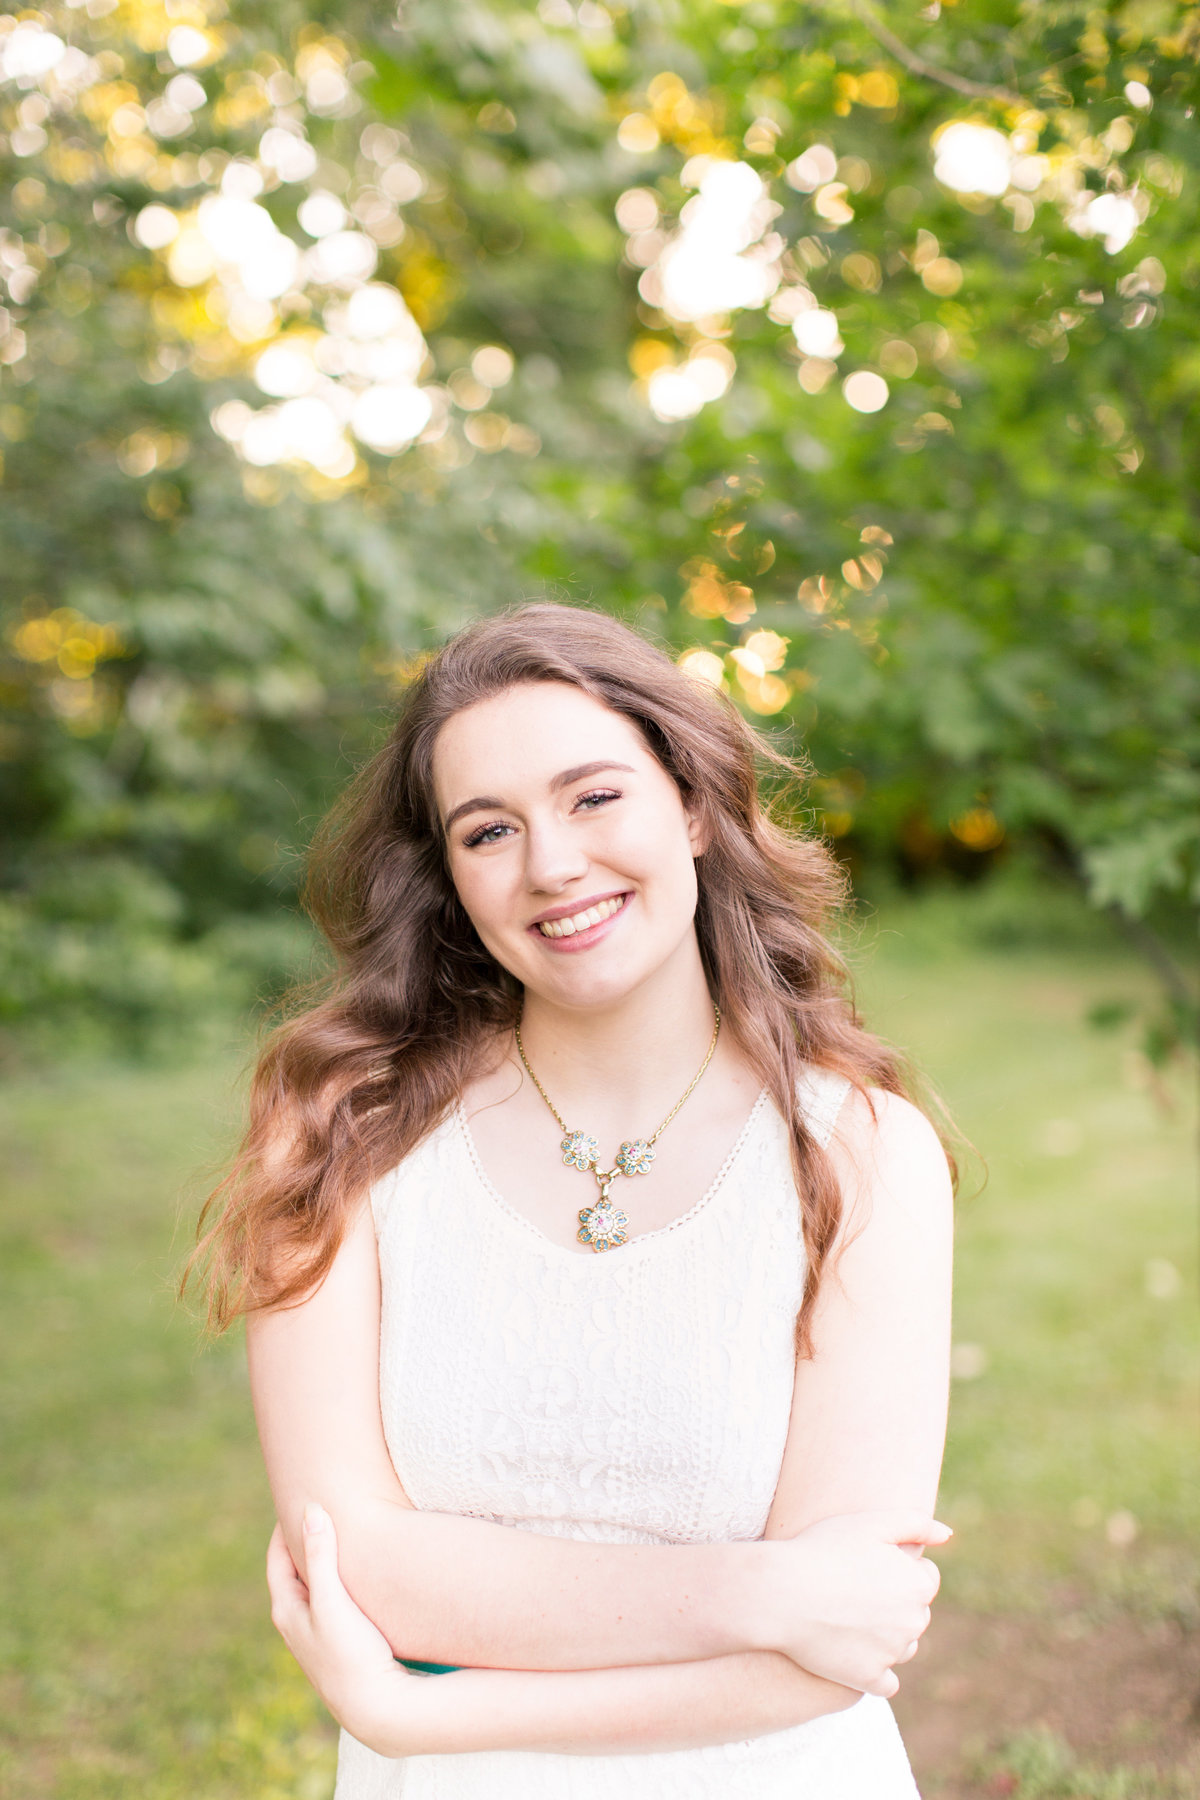 Stafford, Virginia Senior portraits by Marie Hamilton Photography